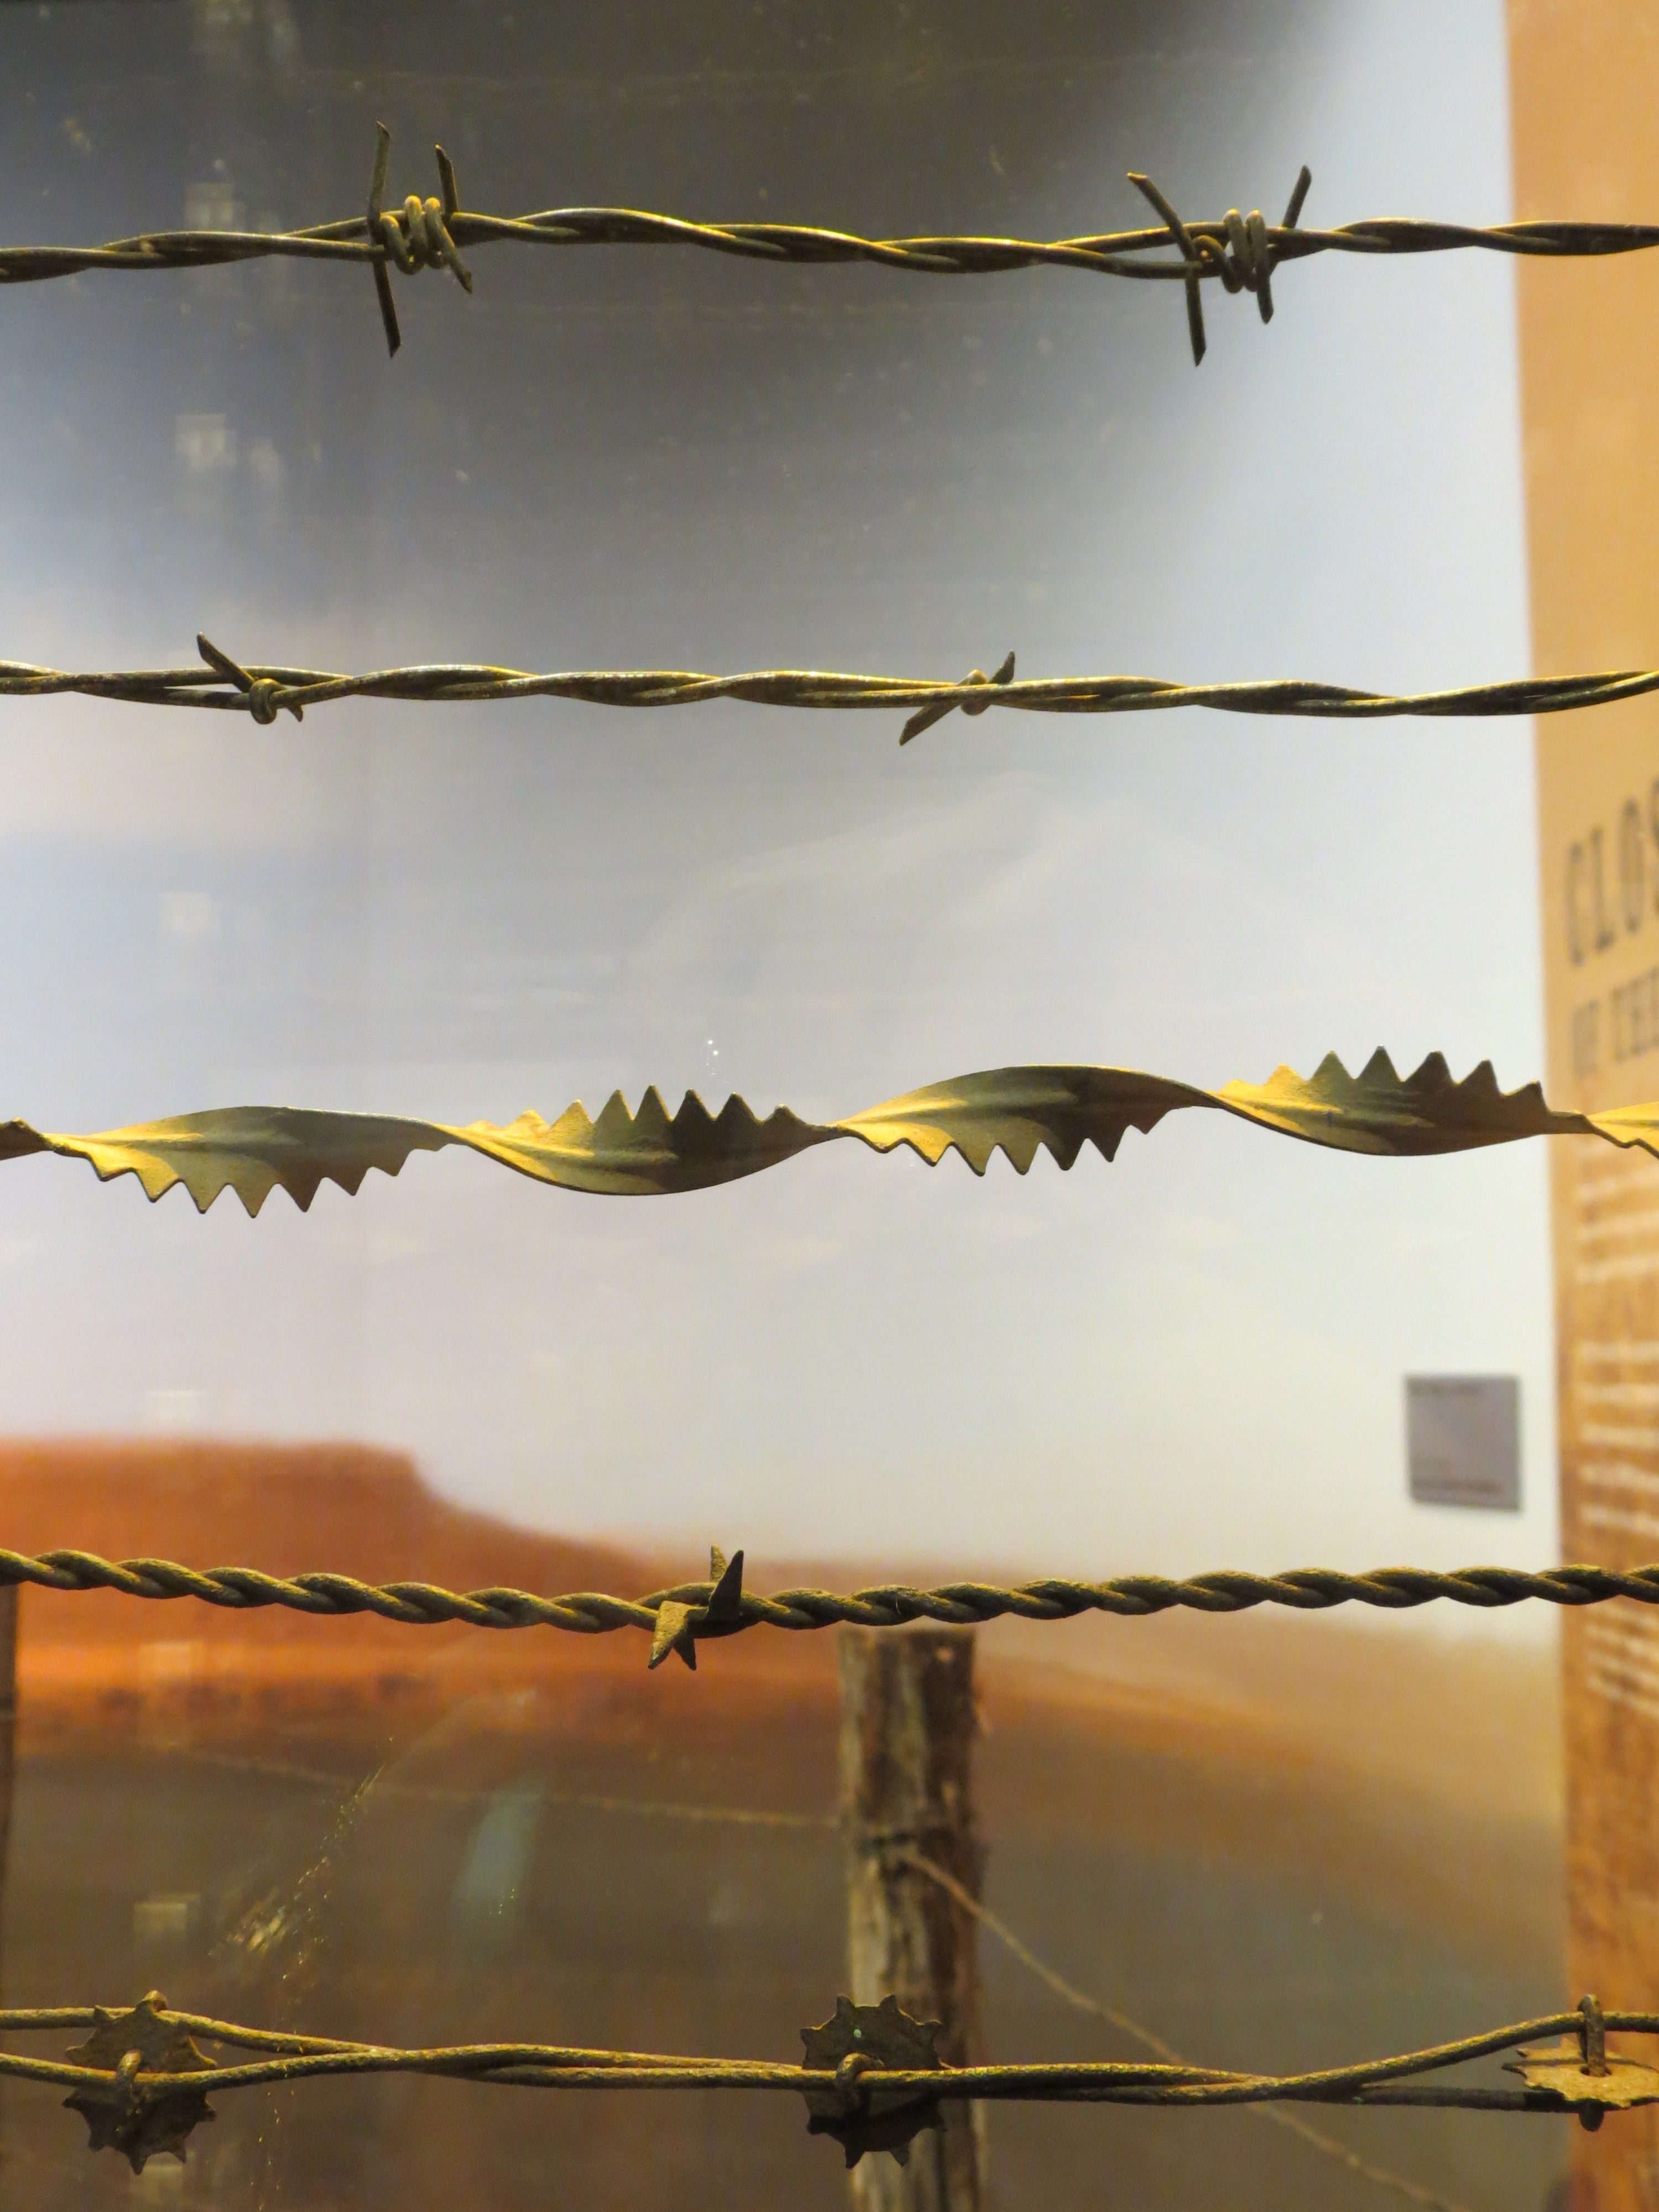 Examples of barbed wire